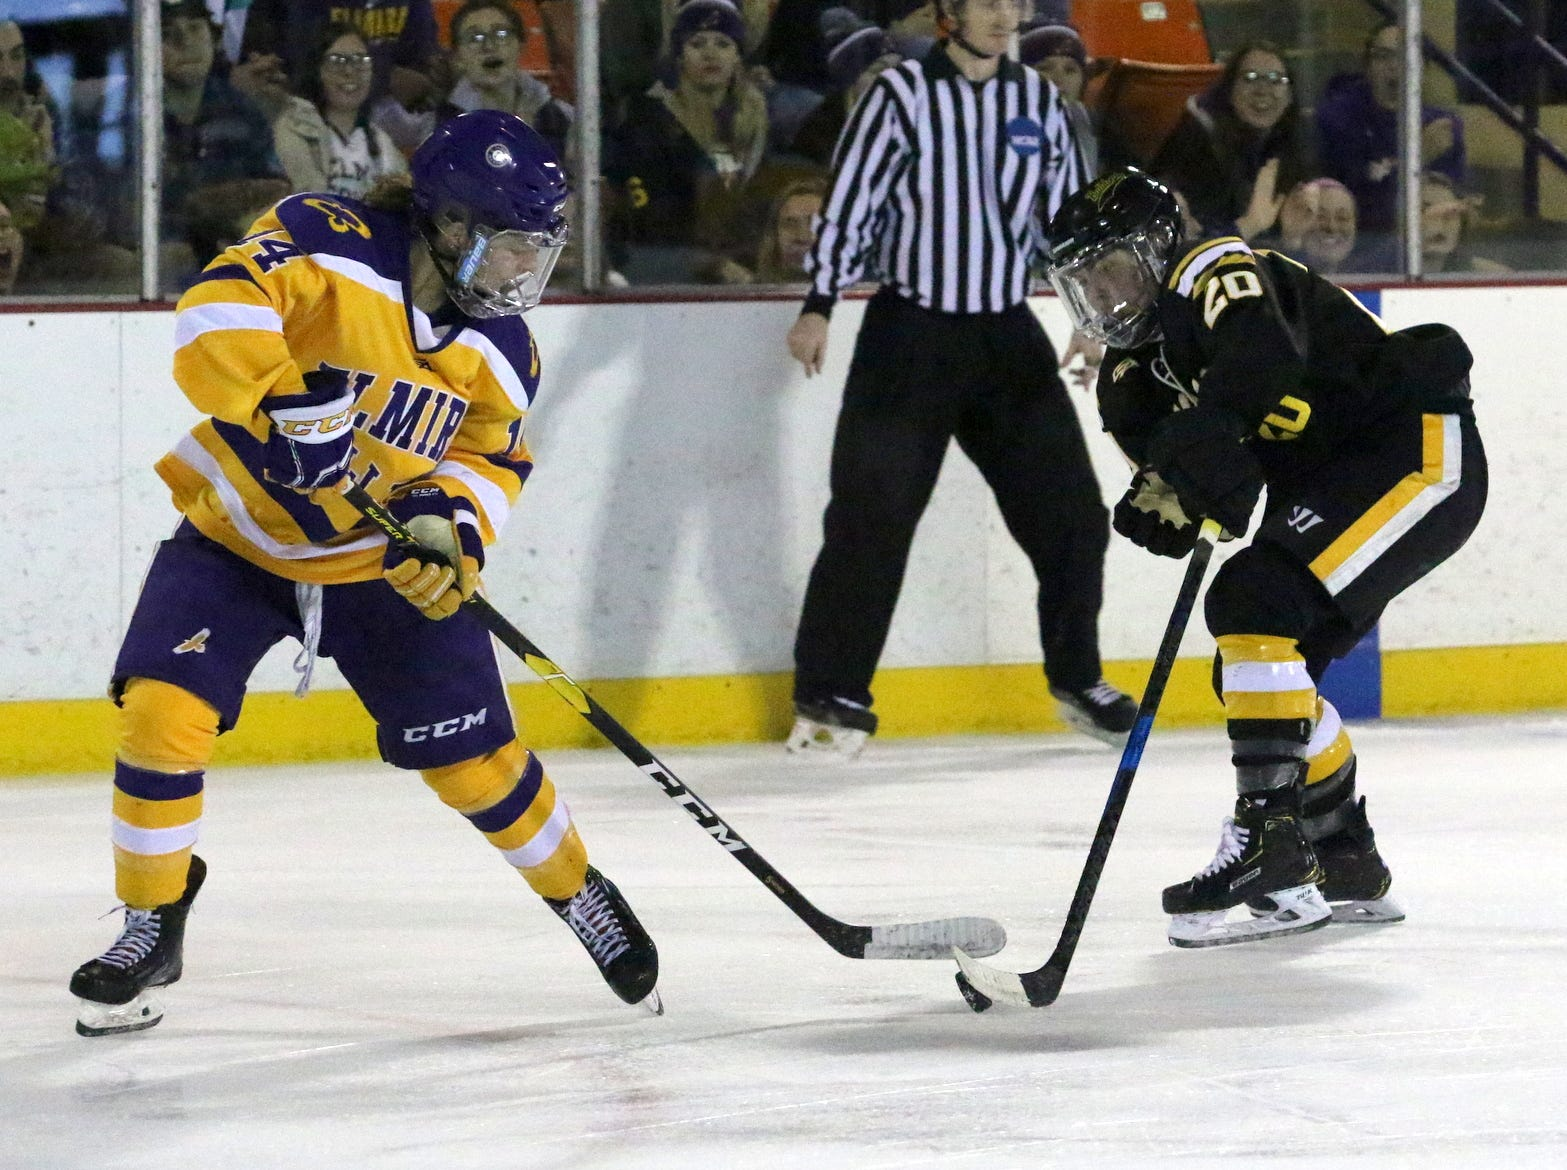 Adrian was a 3-2 overtime winner against Elmira College in an NCAA Division III women's hockey quarterfinal March 9, 2019 at the Murray Athletic Center.